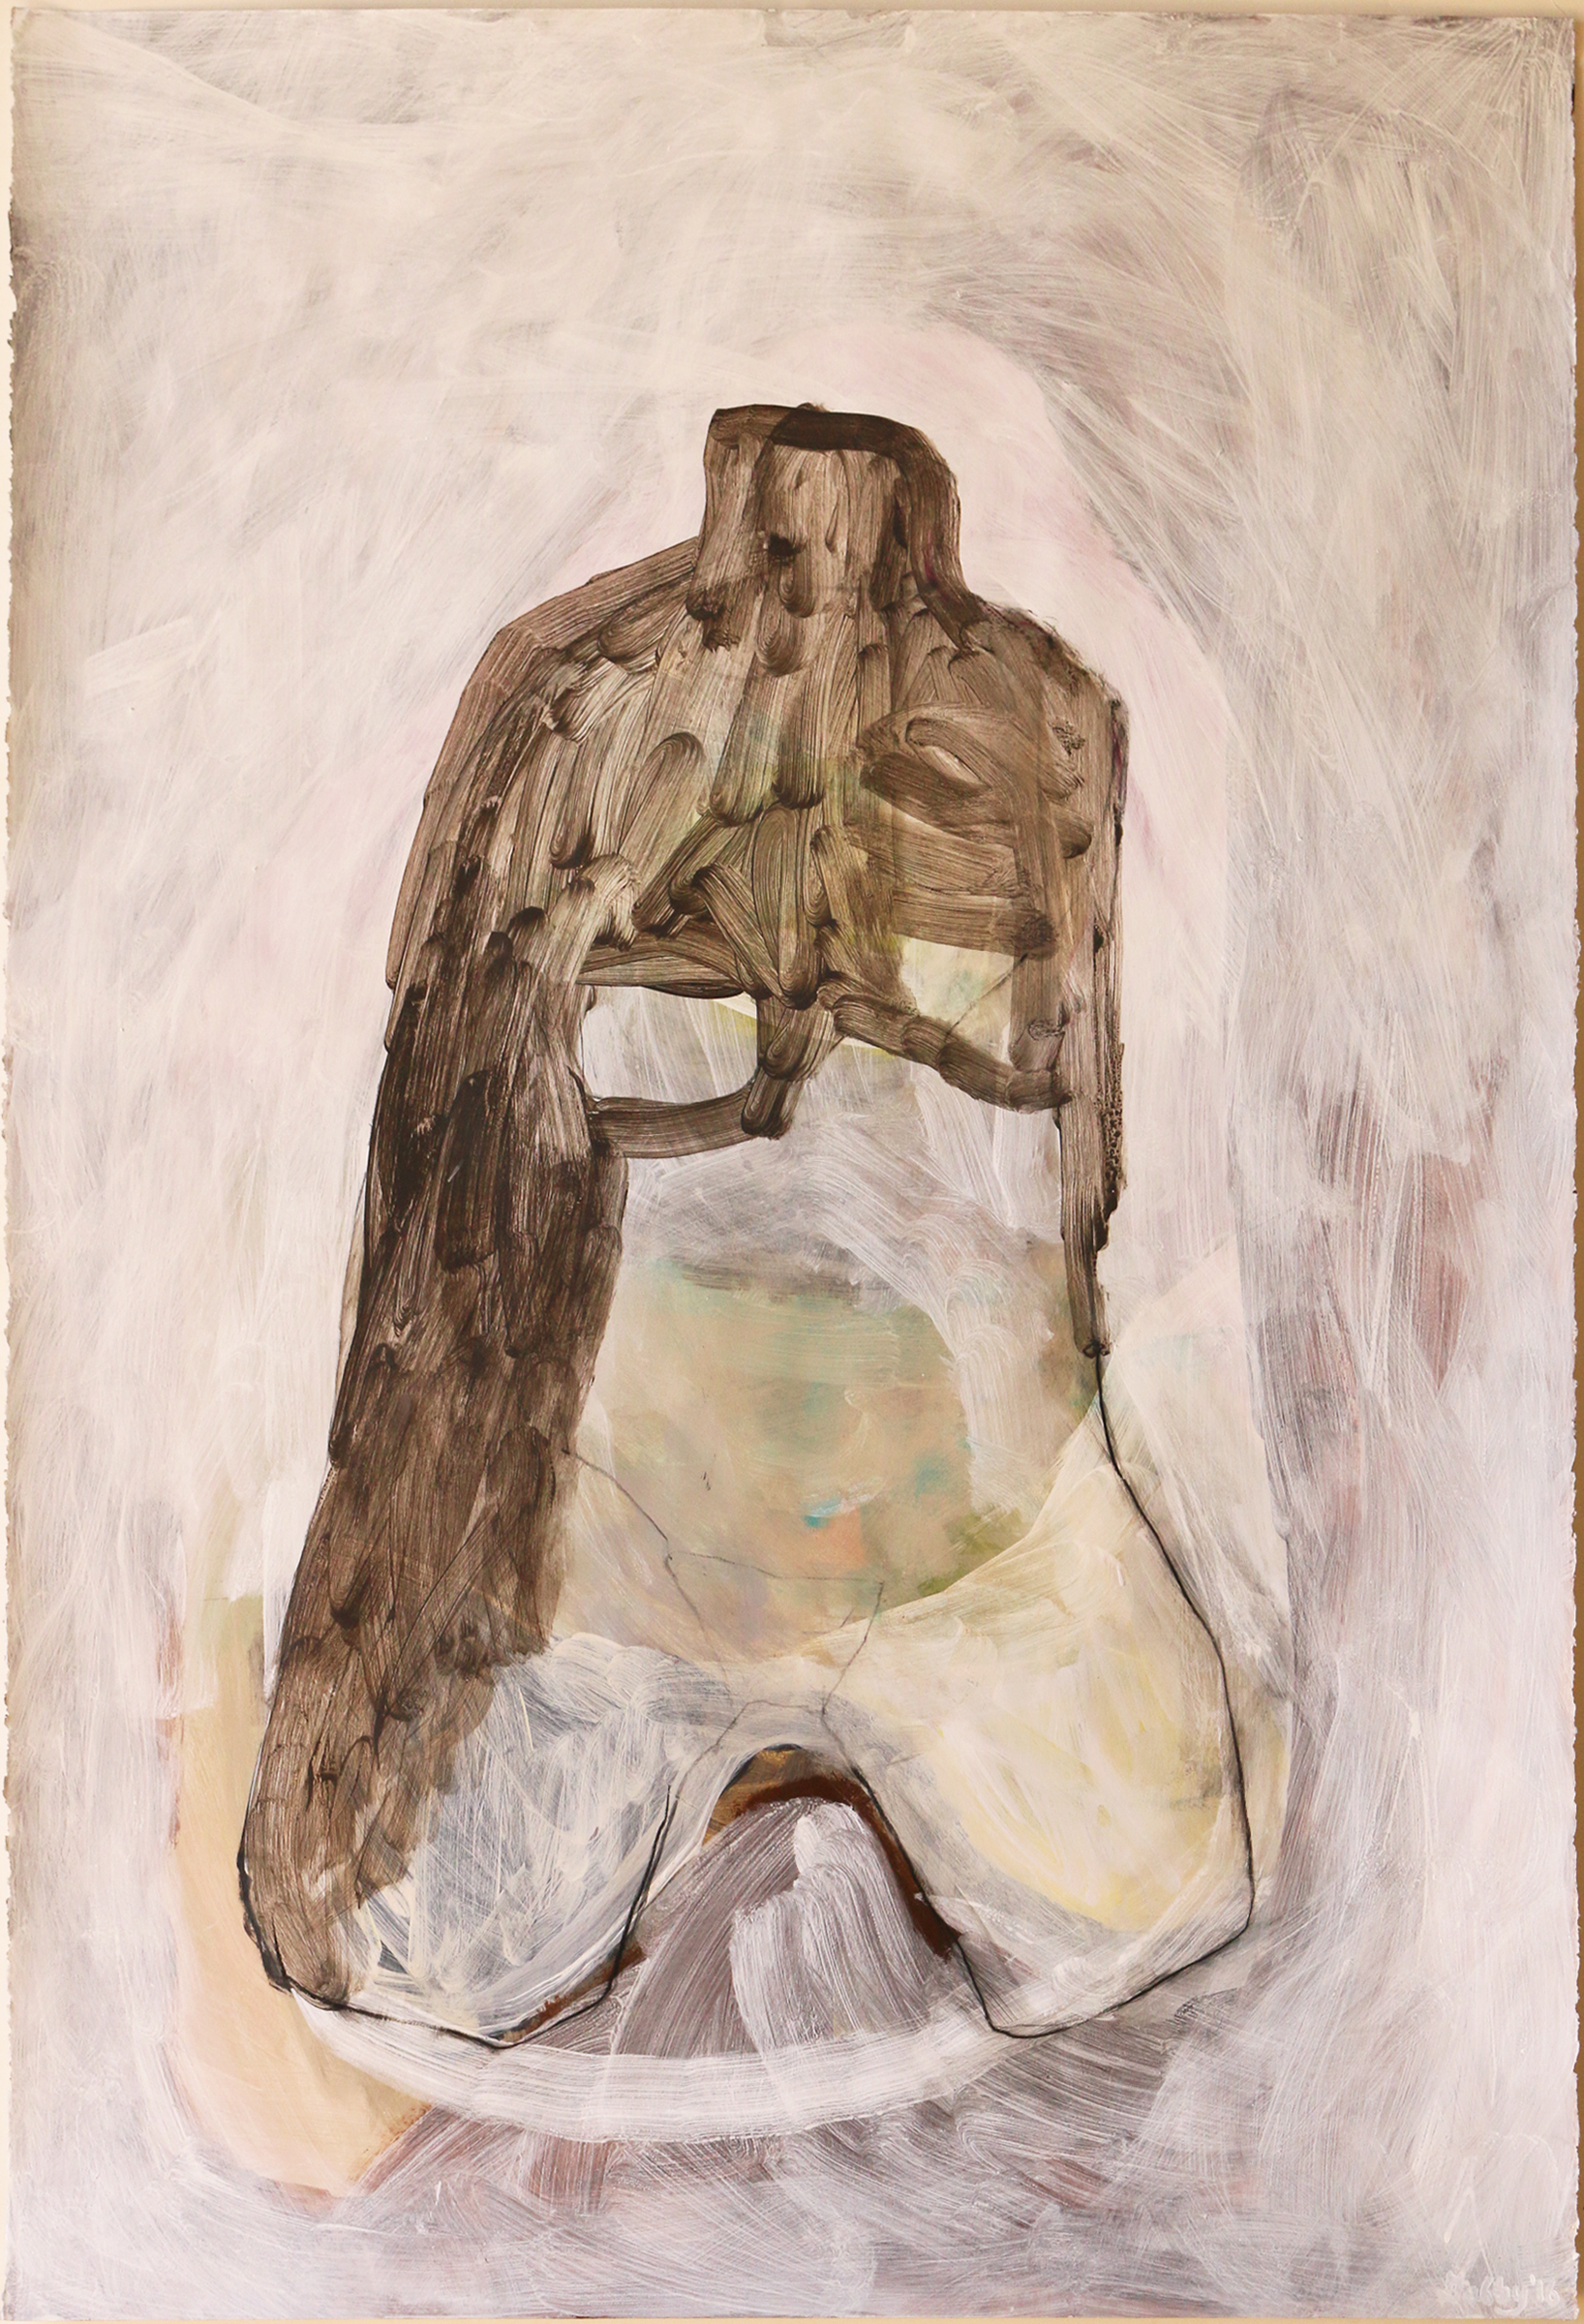 Torso with Cloak, 2016